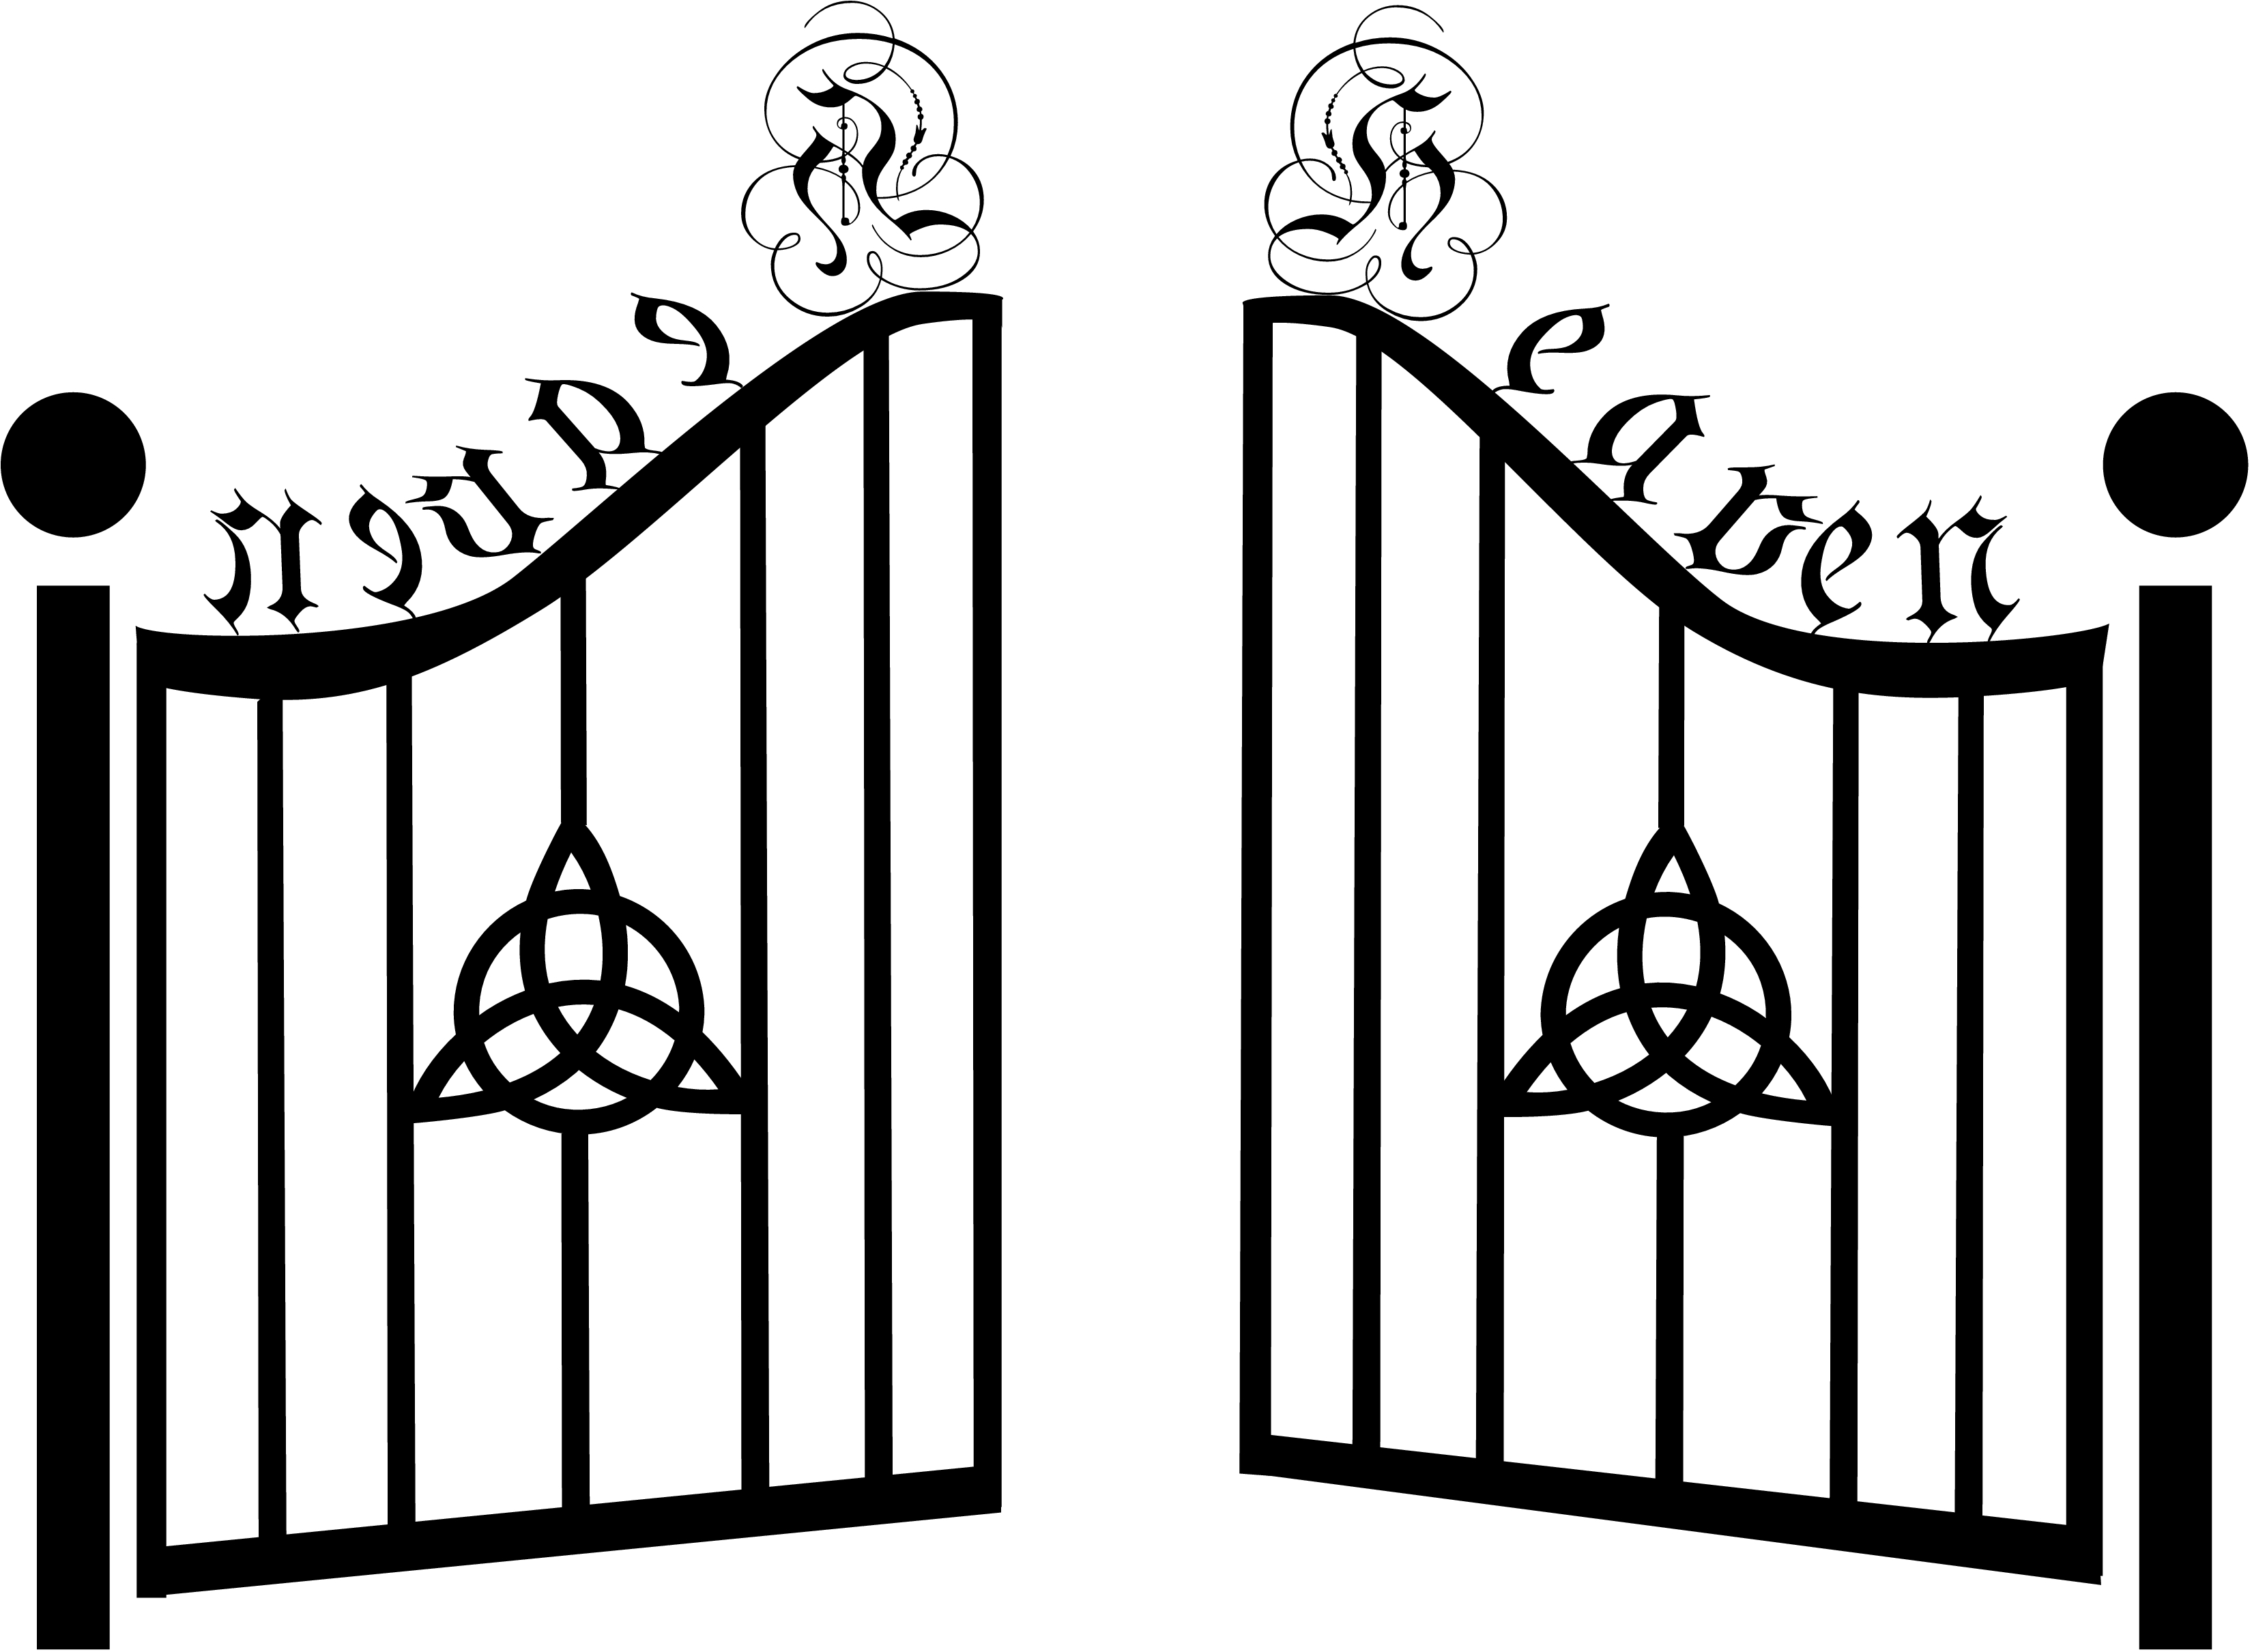 Gate clipart black and white banner freeuse download Gate clipart black and white 10 » Clipart Station banner freeuse download